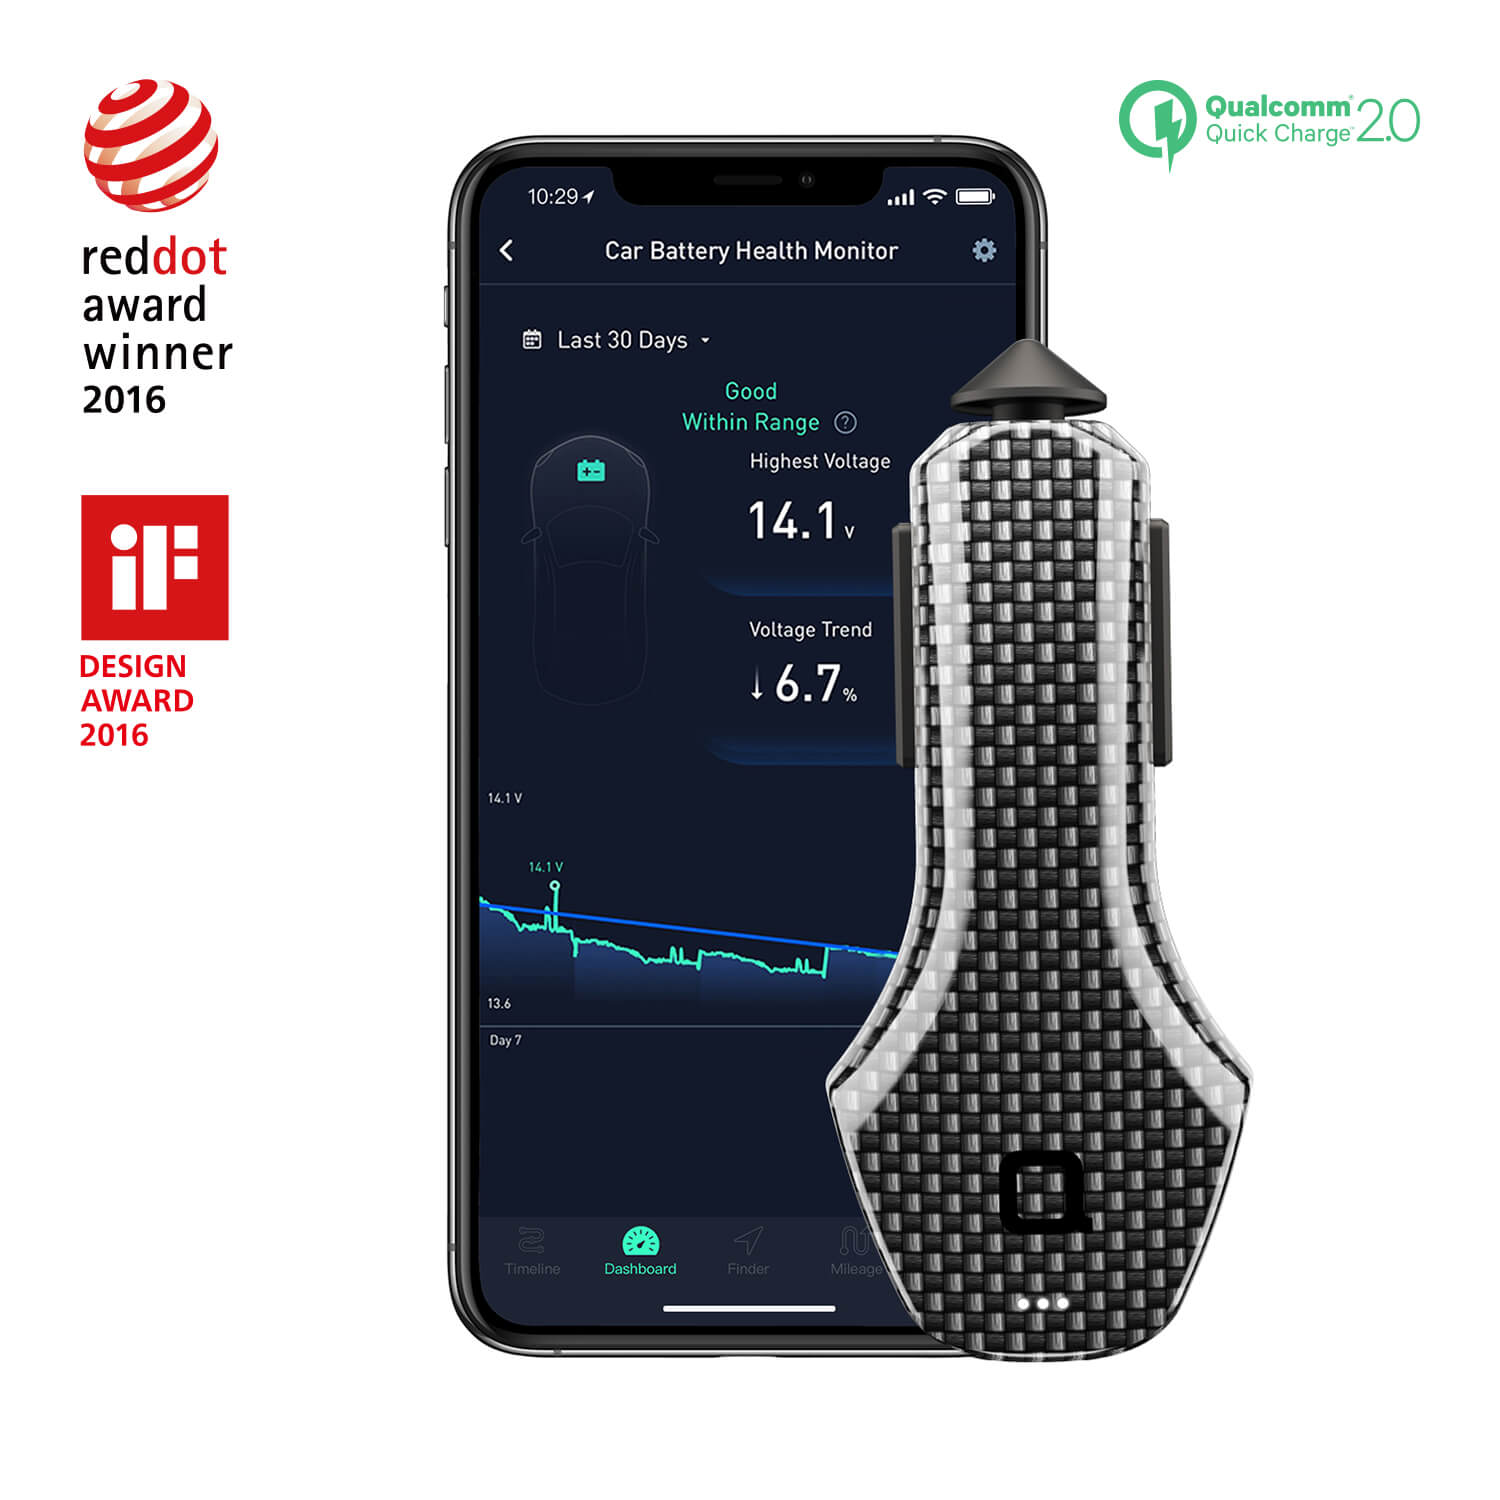 Smart Car Charger Carbon Fiber Edition (Smart Car Charger Carbon Fiber Edition + Car Key Finder)<meta charset= utf-8 ><meta name= product-description  content= .product-description ><meta name= short-title  content=  ><div class= hide product-description >- Designed for Carbon Fiber Interior<br>- Supports Qualcomm® Quick Charge™ 2.0 Technology<br>- Car Finder, Parking Meter and Mileage Log</div><div id= feature_group_list ><div class= feature-group feature-group-attribute   data-attribute='{ type : video_banner , icon :  , media : https://cdn.shopify.com/s/files/1/0703/1149/files/charger_f59a44c0-2de0-4d6f-938b-d49ef64ff075.jpg?370935 , title :  , description :  , video_link : https://vimeo.com/142599852 }'></div><div class= feature-group feature-group-attribute feature-group-inverse feature-group-jumbotron  data-attribute='{ type : content_media_banner , icon :  , media : https://cdn.shopify.com/s/files/1/0703/1149/files/371523417846_.pic_hd_48aaa965-c033-439c-8cb9-4dee44d3bb03.jpg?16000461231387614525 , title : ZUS<sup>®</sup> Smart Car Charger Carbon Fiber Edition , description : Designed for Carbon Fiber Interior. , video_link : }'><div class= row  id= banner ><div class= col-xs-12 feature-media-box ><div class= feature-media b-lazy ><div class= feature-content-box ><div class= feature-content row ><div class= typo typo-heavy col-md-6 ><h2 class= banner-lowercase >ZUS<sup>®</sup> Smart Car Charger Carbon Fiber Edition</h2><hr><p>Designed for Carbon Fiber Interior.</p></div></div></div></div></div></div></div><div class= feature-group feature-group-attribute   data-attribute='{ type : media_content , icon :  , media : https://cdn.shopify.com/s/files/1/0703/1149/files/Carbon_Charger_Design.png?13776083495846322898 , title : Designed for Carbon Fiber Interior , description : World's first carbon fiber smart car charger. , video_link : }'><div class= row ><div class= col-xs-12 col-md-6 col-md-push-6 feature-content-box ><div class= feature-content ><div class= typo typo-heavy ><h2>Designed for Carbon Fiber Interior</h2><hr><p>World's first carbon fiber smart car charger.</p></div></div></div><div class= col-xs-12 col-md-6 col-md-pull-6 feature-media-box ></div></div></div><div class= feature-group feature-group-attribute   data-attribute='{ type : content_media , icon :  , media : https://cdn.shopify.com/s/files/1/0703/1149/files/Carbon_Texture.png?13776083495846322898 , title : 100% Genuine Carbon Fiber Material , description : ZUS<sup>®</sup> Carbon Fiber Edition is made from 100% real carbon fiber material that provides sports car styling and luxury comforts. , video_link : }'><div class= row ><div class= col-xs-12 col-md-6 feature-content-box ><div class= feature-content ><div class= typo typo-heavy ><h2>100% Genuine Carbon Fiber Material</h2><hr><p>ZUS<sup>®</sup> Carbon Fiber Edition is made from 100% real carbon fiber material that provides sports car styling and luxury comforts.</p></div></div></div><div class= col-xs-12 col-md-6 feature-media-box ></div></div></div><div class= feature-group feature-group-attribute   data-attribute='{ type : media_content , icon :  , media : https://cdn.shopify.com/s/files/1/0703/1149/files/Carbon_Charge_Speed.png?13776083495846322898 , title : Charge at Max Speed , description : Charge two devices at their maximum speed, faster than a normal car charger. Support Qualcomm Quick Charge 2.0 Tech.<br><img src=https://cdn.shopify.com/s/files/1/0703/1149/files/QC_charger_speed.png?18355896808739973246 width=80% /> , video_link : }'><div class= row ><div class= col-xs-12 col-md-6 col-md-push-6 feature-content-box ><div class= feature-content ><div class= typo typo-heavy ><h2>Charge at Max Speed</h2><hr><p>Charge two devices at their maximum speed, faster than a normal car charger. Support Qualcomm Quick Charge 2.0 Tech.<br><img src= https://cdn.shopify.com/s/files/1/0703/1149/files/QC_charger_speed.png?18355896808739973246  width= 80% ></p></div></div></div><div class= col-xs-12 col-md-6 col-md-pull-6 feature-media-box ></div></div></div><div class= feature-group feature-group-attribute   data-attribute='{ type : content_media , icon :  , media : https://cdn.shopify.com/s/files/1/0703/1149/files/Carbon_Charger_Reversible.png?13776083495846322898 , title : Reversible USB Ports , description : Plug your charging cable in either direction.<br> <img src=https://cdn.shopify.com/s/files/1/0703/1149/files/reversible_port_charger.svg?8312197254664670630 width=80% /> , video_link : }'><div class= row ><div class= col-xs-12 col-md-6 feature-content-box ><div class= feature-content ><div class= typo typo-heavy ><h2>Reversible USB Ports</h2><hr><p>Plug your charging cable in either direction.<br> <img src= https://cdn.shopify.com/s/files/1/0703/1149/files/reversible_port_charger.svg?8312197254664670630  width= 80% ></p></div></div></div><div class= col-xs-12 col-md-6 feature-media-box ></div></div></div><div class= feature-group feature-group-attribute feature-group-inverse feature-group-contain feature-group-bg  data-attribute='{ type : content_media_bg , icon :  , media : https://cdn.shopify.com/s/files/1/0703/1149/files/charger_app_right.png?3593880293489420883 , bg_media : https://cdn.shopify.com/s/files/1/0703/1149/files/carbon_charger_app_left.png?13776083495846322898 , media_url_mb : https://cdn.shopify.com/s/files/1/0703/1149/files/charger_app_right.png?3593880293489420883 , bg_media_url_mb : https://cdn.shopify.com/s/files/1/0703/1149/files/1.9_charger_app_left.png?1209096827924764264 , title :  , description :  , video_link : }'></div><div class= feature-group feature-group-attribute   data-attribute='{ type : content_media , icon : carbattery_j , media : https://cdn.shopify.com/s/files/1/0703/1149/files/charger-bj.jpg?6881711965509197545 , title : Car Battery Health Monitor , description : Monitor your car battery health and avoid the hassle of a drained battery. Identify potential issues by tracking voltage over time and get alerts whenever a battery check is recommended. , video_link : https://player.vimeo.com/video/215138434 }'><div class= row ><div class= col-xs-12 col-md-6 feature-content-box ><div class= feature-content ><div class= typo typo-heavy ><h2>Car Battery Health Monitor</h2><hr><p>Monitor your car battery health and avoid the hassle of a drained battery. Identify potential issues by tracking voltage over time and get alerts whenever a battery check is recommended.</p></div></div></div><div class= col-xs-12 col-md-6 feature-media-box ></div></div></div><div class= feature-group feature-group-attribute   data-attribute='{ type : media_content , icon : carlog , media : https://cdn.shopify.com/s/files/1/0703/1149/files/APP_Finder.jpg?2006268022745227684 , title : Automatic Car Finder , description : The ZUS<sup>®</sup> Smart Driving Assistant App automatically saves your parking location. Simply open the ZUS<sup>®</sup> App to find your car with the map or compass. , video_link : https://player.vimeo.com/video/215140290 }'><div class= row ><div class= col-xs-12 col-md-6 col-md-push-6 feature-content-box ><div class= feature-content ><div class= typo typo-heavy ><h2>Automatic Car Finder</h2><hr><p>The ZUS<sup>®</sup> Smart Driving Assistant App automatically saves your parking location. Simply open the ZUS<sup>®</sup> App to find your car with the map or compass.</p></div></div></div><div class= col-xs-12 col-md-6 col-md-pull-6 feature-media-box ></div></div></div><div class= feature-group feature-group-attribute   data-attribute='{ type : content_media , icon : miles_j , media : https://cdn.shopify.com/s/files/1/0703/1149/files/APP_Mileage.jpg?2006268022745227684 , title : Mileage Log , description : Automatically log your mileage, trip duration and savings potential for each drive. Swipe to classify business drives for tax deductions and easily export IRS compliant reports. Save as much as $5000 in annual tax deductions. , video_link : https://player.vimeo.com/video/215137568 }'><div class= row ><div class= col-xs-12 col-md-6 feature-content-box ><div class= feature-content ><div class= typo typo-heavy ><h2>Mileage Log</h2><hr><p>Automatically log your mileage, trip duration and savings potential for each drive. Swipe to classify business drives for tax deductions and easily export IRS compliant reports. Save as much as $5000 in annual tax deductions.</p></div></div></div><div class= col-xs-12 col-md-6 feature-media-box ></div></div></div><div class= feature-group feature-group-attribute   data-attribute='{ type : media_content , icon : share_j , media : https://cdn.shopify.com/s/files/1/0703/1149/files/APP_Parking.jpg?2006268022745227684 , title : Parking Location Share , description : Skip the complex instructions. Connect to loved ones via Family Share and they can easily find where your car is parked with their phone. , video_link : https://player.vimeo.com/video/215138848 }'><div class= row ><div class= col-xs-12 col-md-6 col-md-push-6 feature-content-box ><div class= feature-content ><div class= typo typo-heavy ><h2>Parking Location Share</h2><hr><p>Skip the complex instructions. Connect to loved ones via Family Share and they can easily find where your car is parked with their phone.</p></div></div></div><div class= col-xs-12 col-md-6 col-md-pull-6 feature-media-box ></div></div></div><div class= feature-group feature-group-attribute   data-attribute='{ type : content_media , icon : clock , media : https://cdn.shopify.com/s/files/1/0703/1149/files/APP_Alarm.jpg?2006268022745227684 , title : Parking Time Alarm , description : Prevent parking tickets by tracking the time left on the meter. Easily set a parking timer to alert you 10 minutes before time runs out. , video_link : https://player.vimeo.com/video/215138632 }'><div class= row ><div class= col-xs-12 col-md-6 feature-content-box ><div class= feature-content ><div class= typo typo-heavy ><h2>Parking Time Alarm</h2><hr><p>Prevent parking tickets by tracking the time left on the meter. Easily set a parking timer to alert you 10 minutes before time runs out.</p></div></div></div><div class= col-xs-12 col-md-6 feature-media-box ></div></div></div><div class= feature-group feature-group-attribute   data-attribute='{ type : zus_carbon_tech_spec }'>zus_carbon_tech_spec</div><div class= feature-group feature-group-attribute feature-group-inverse  data-attribute='{ type : about_nonda }'>about_nonda</div><div class= feature-group feature-group-attribute feature-group-inverse  data-attribute='{ type : nonda_awards }'>nonda_awards</div></div>